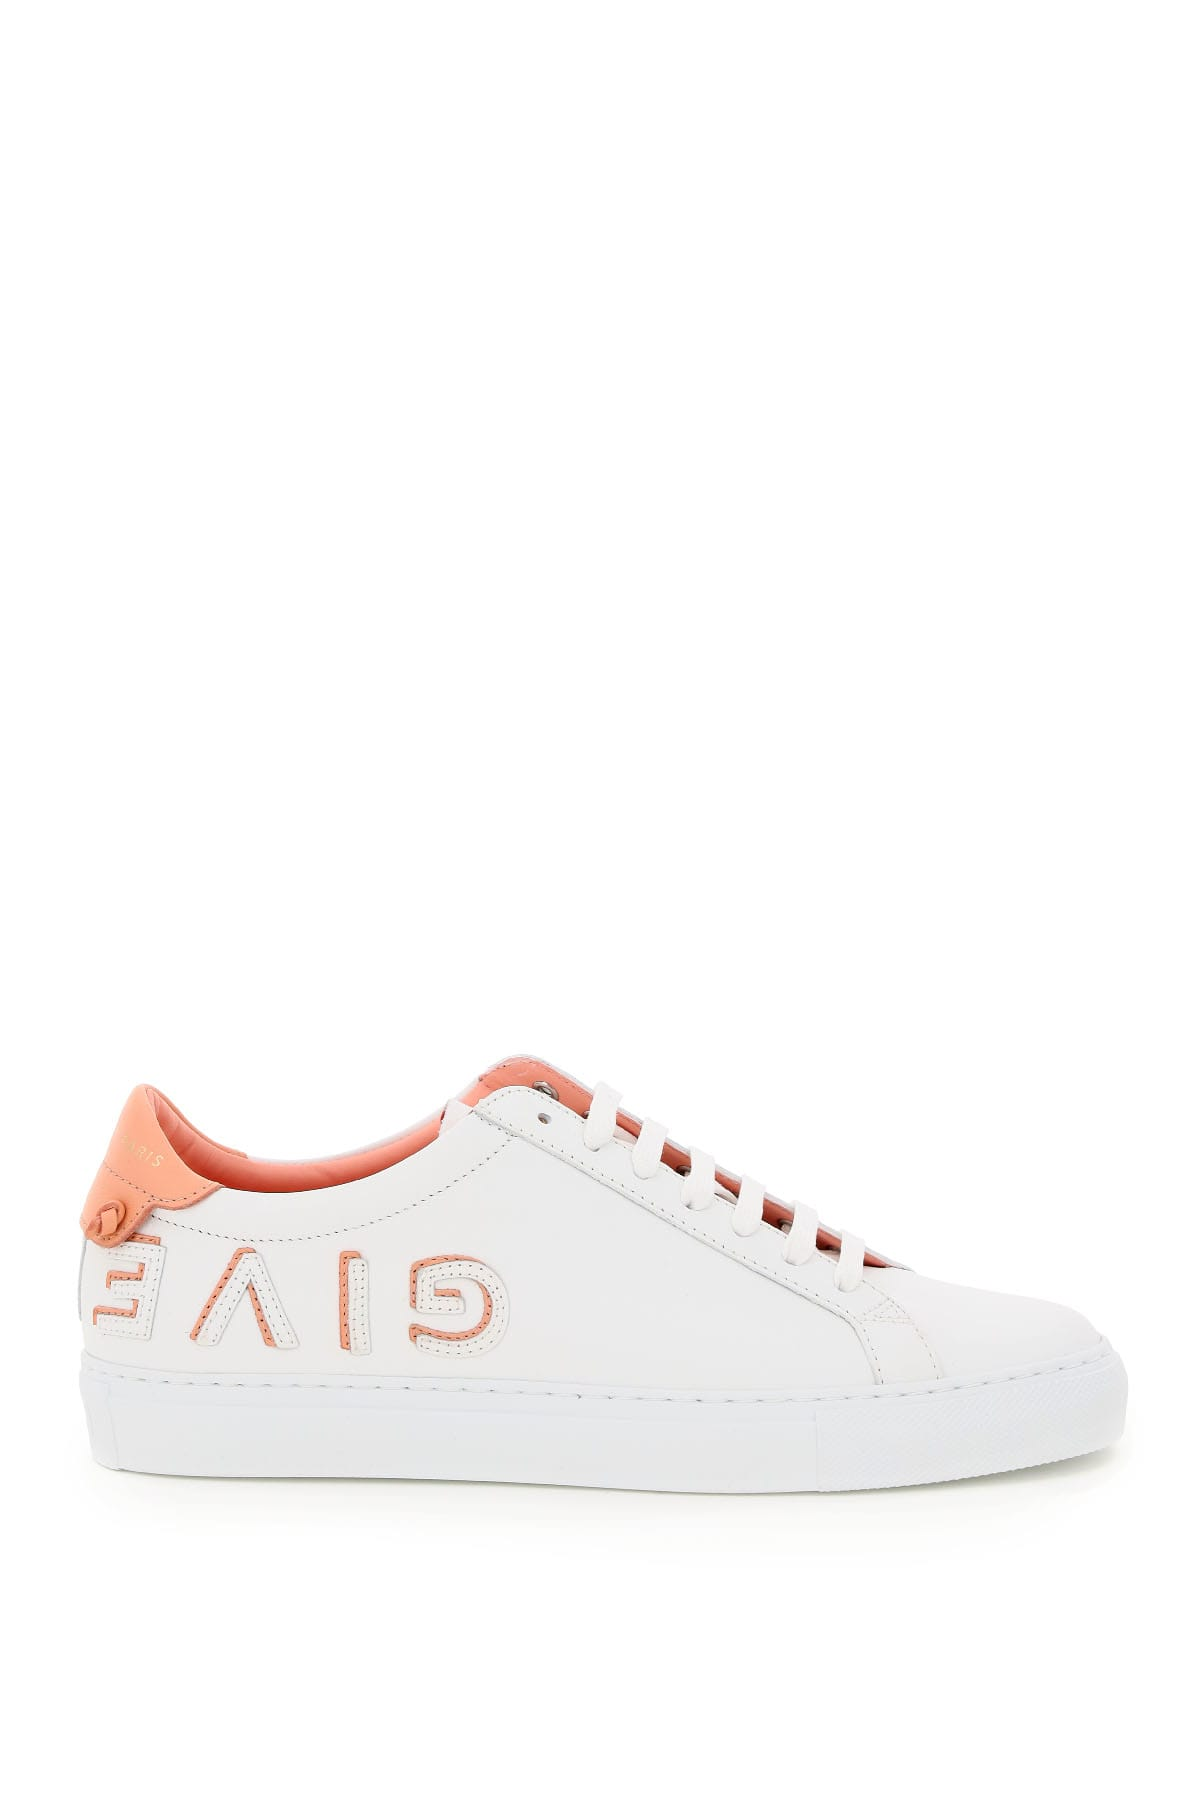 Givenchy Urban Street Leather Sneakers Reverso Logo